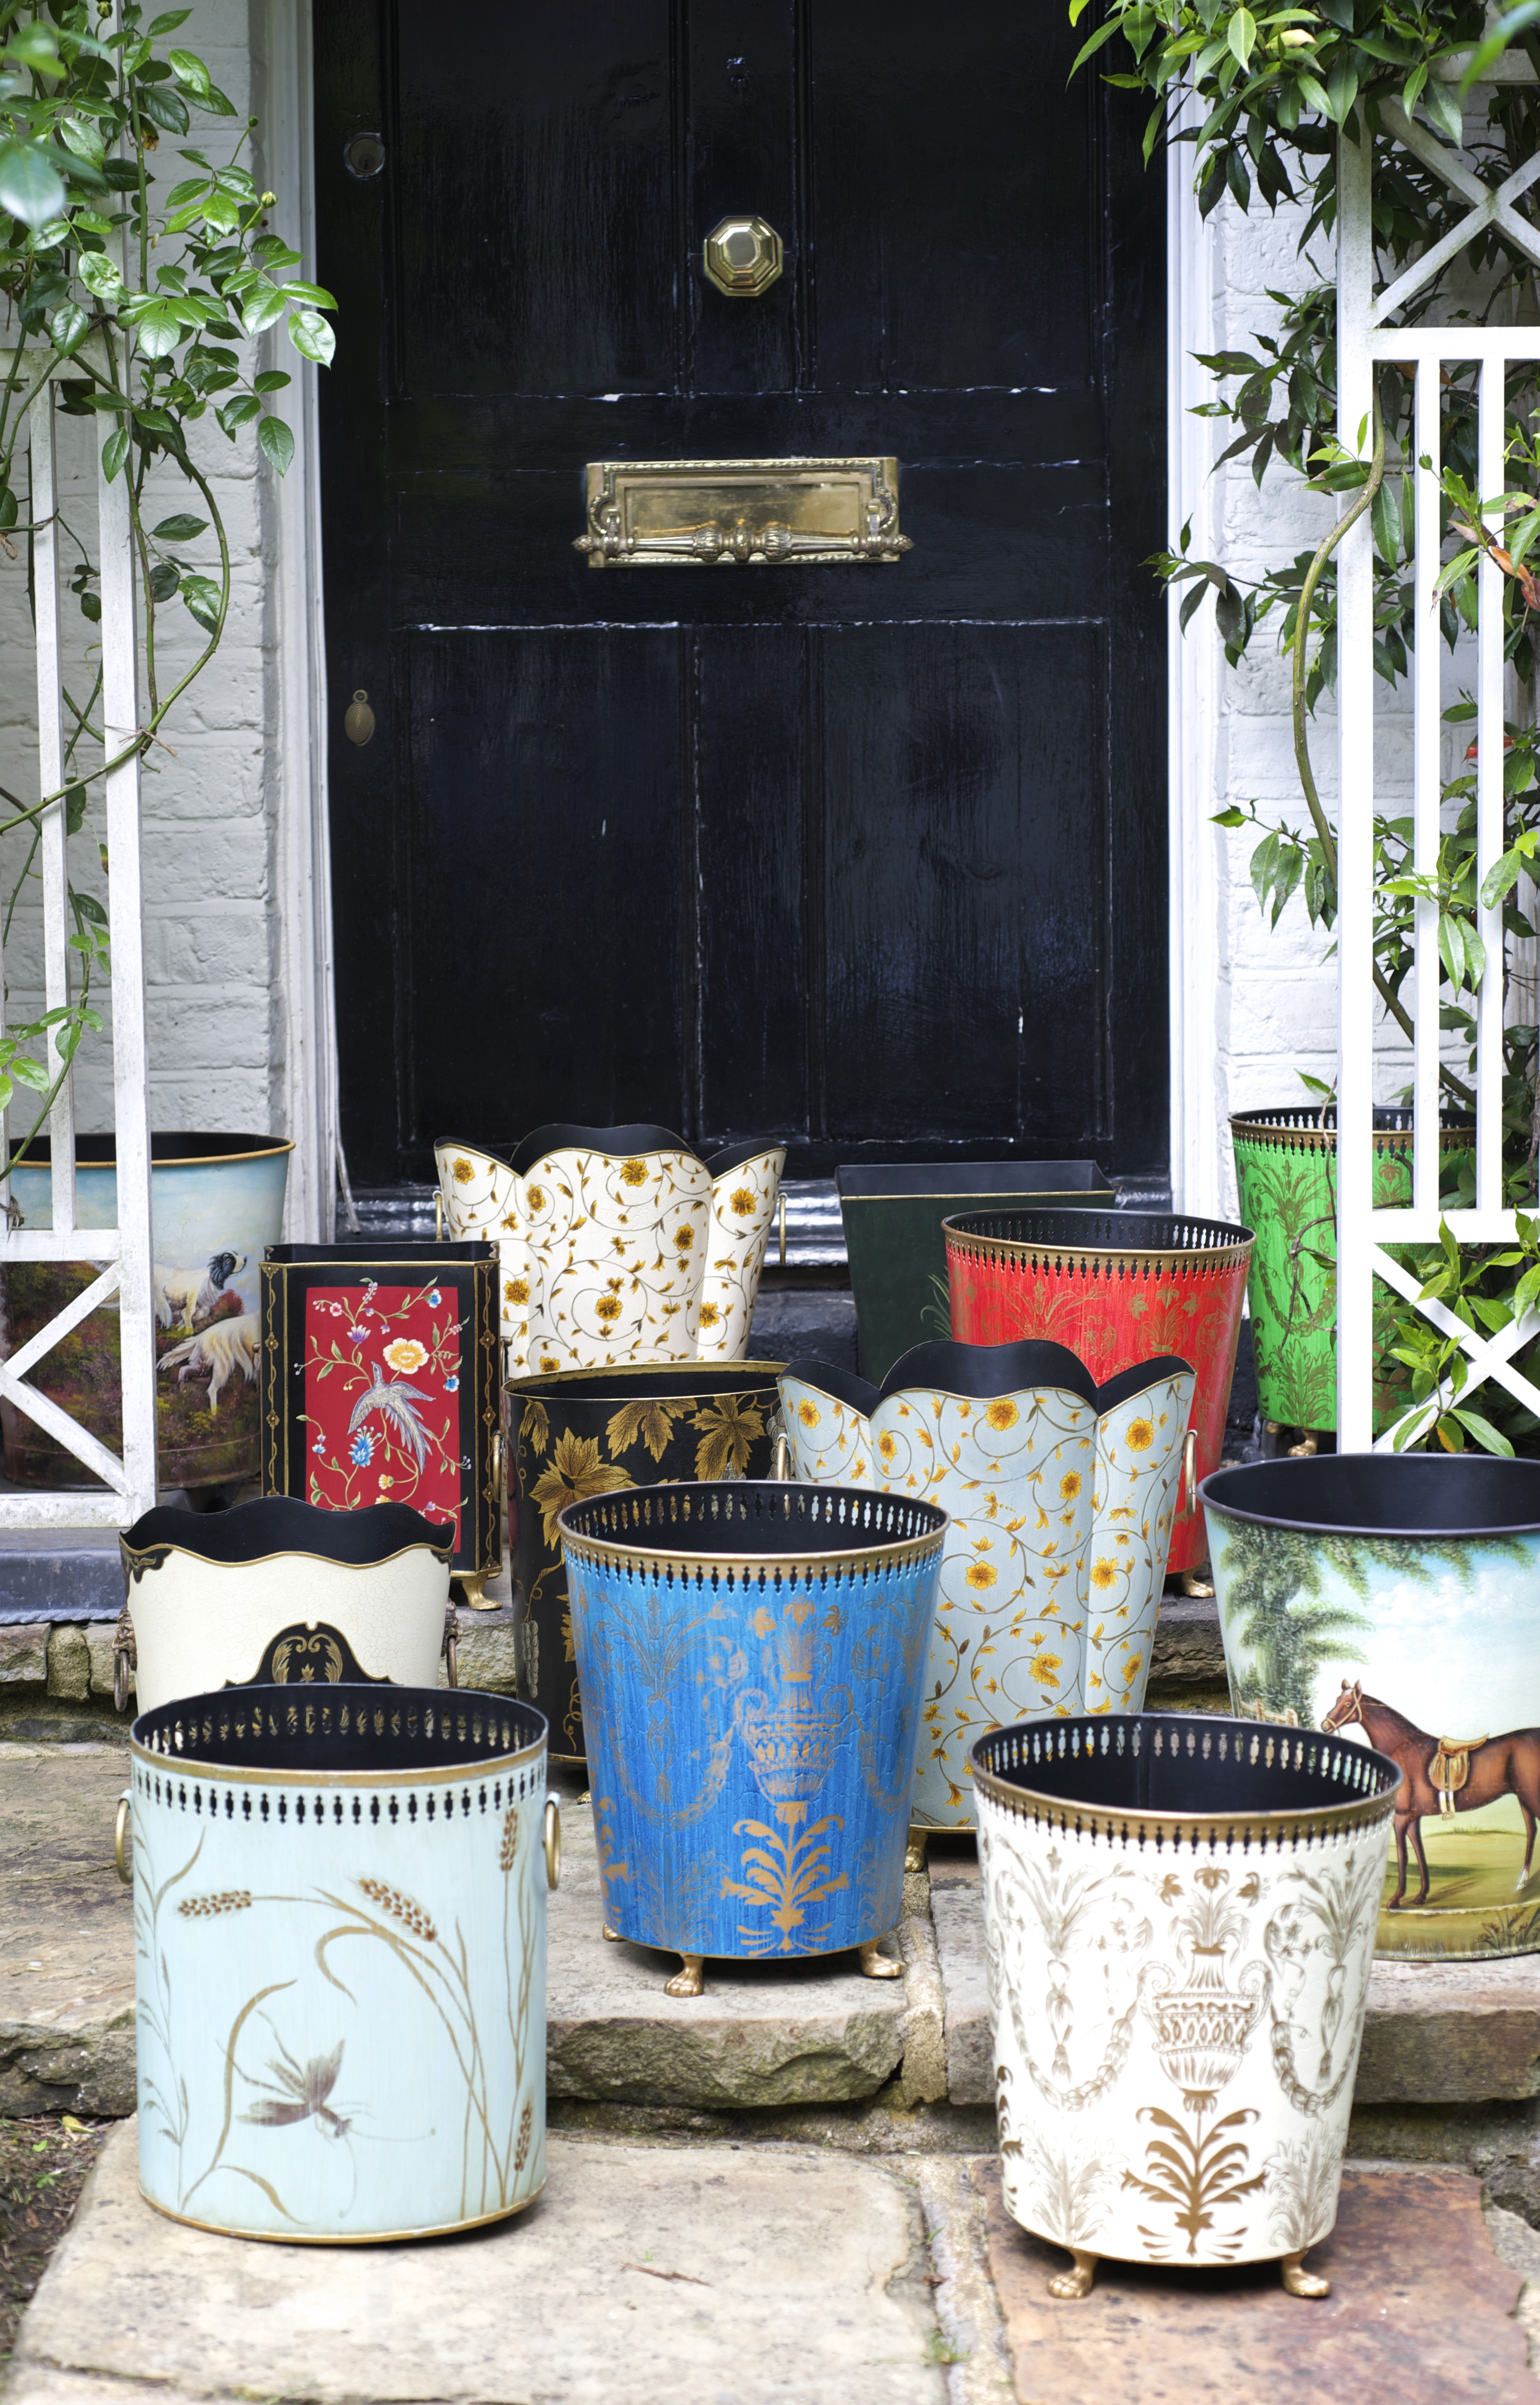 English Country House Decor Waste Paper Bins Baskets Accessories